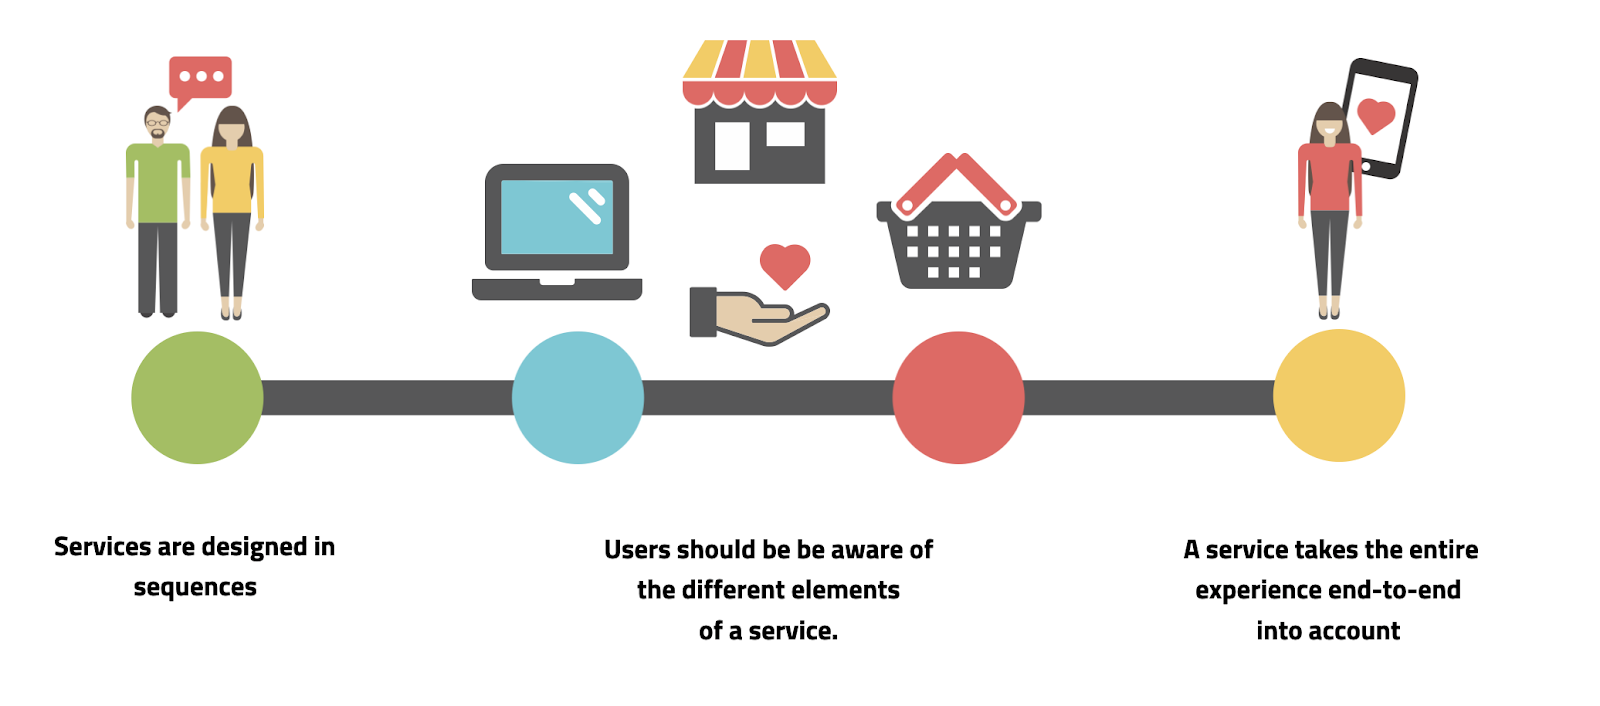 Graphic lays out what makes an ideal service